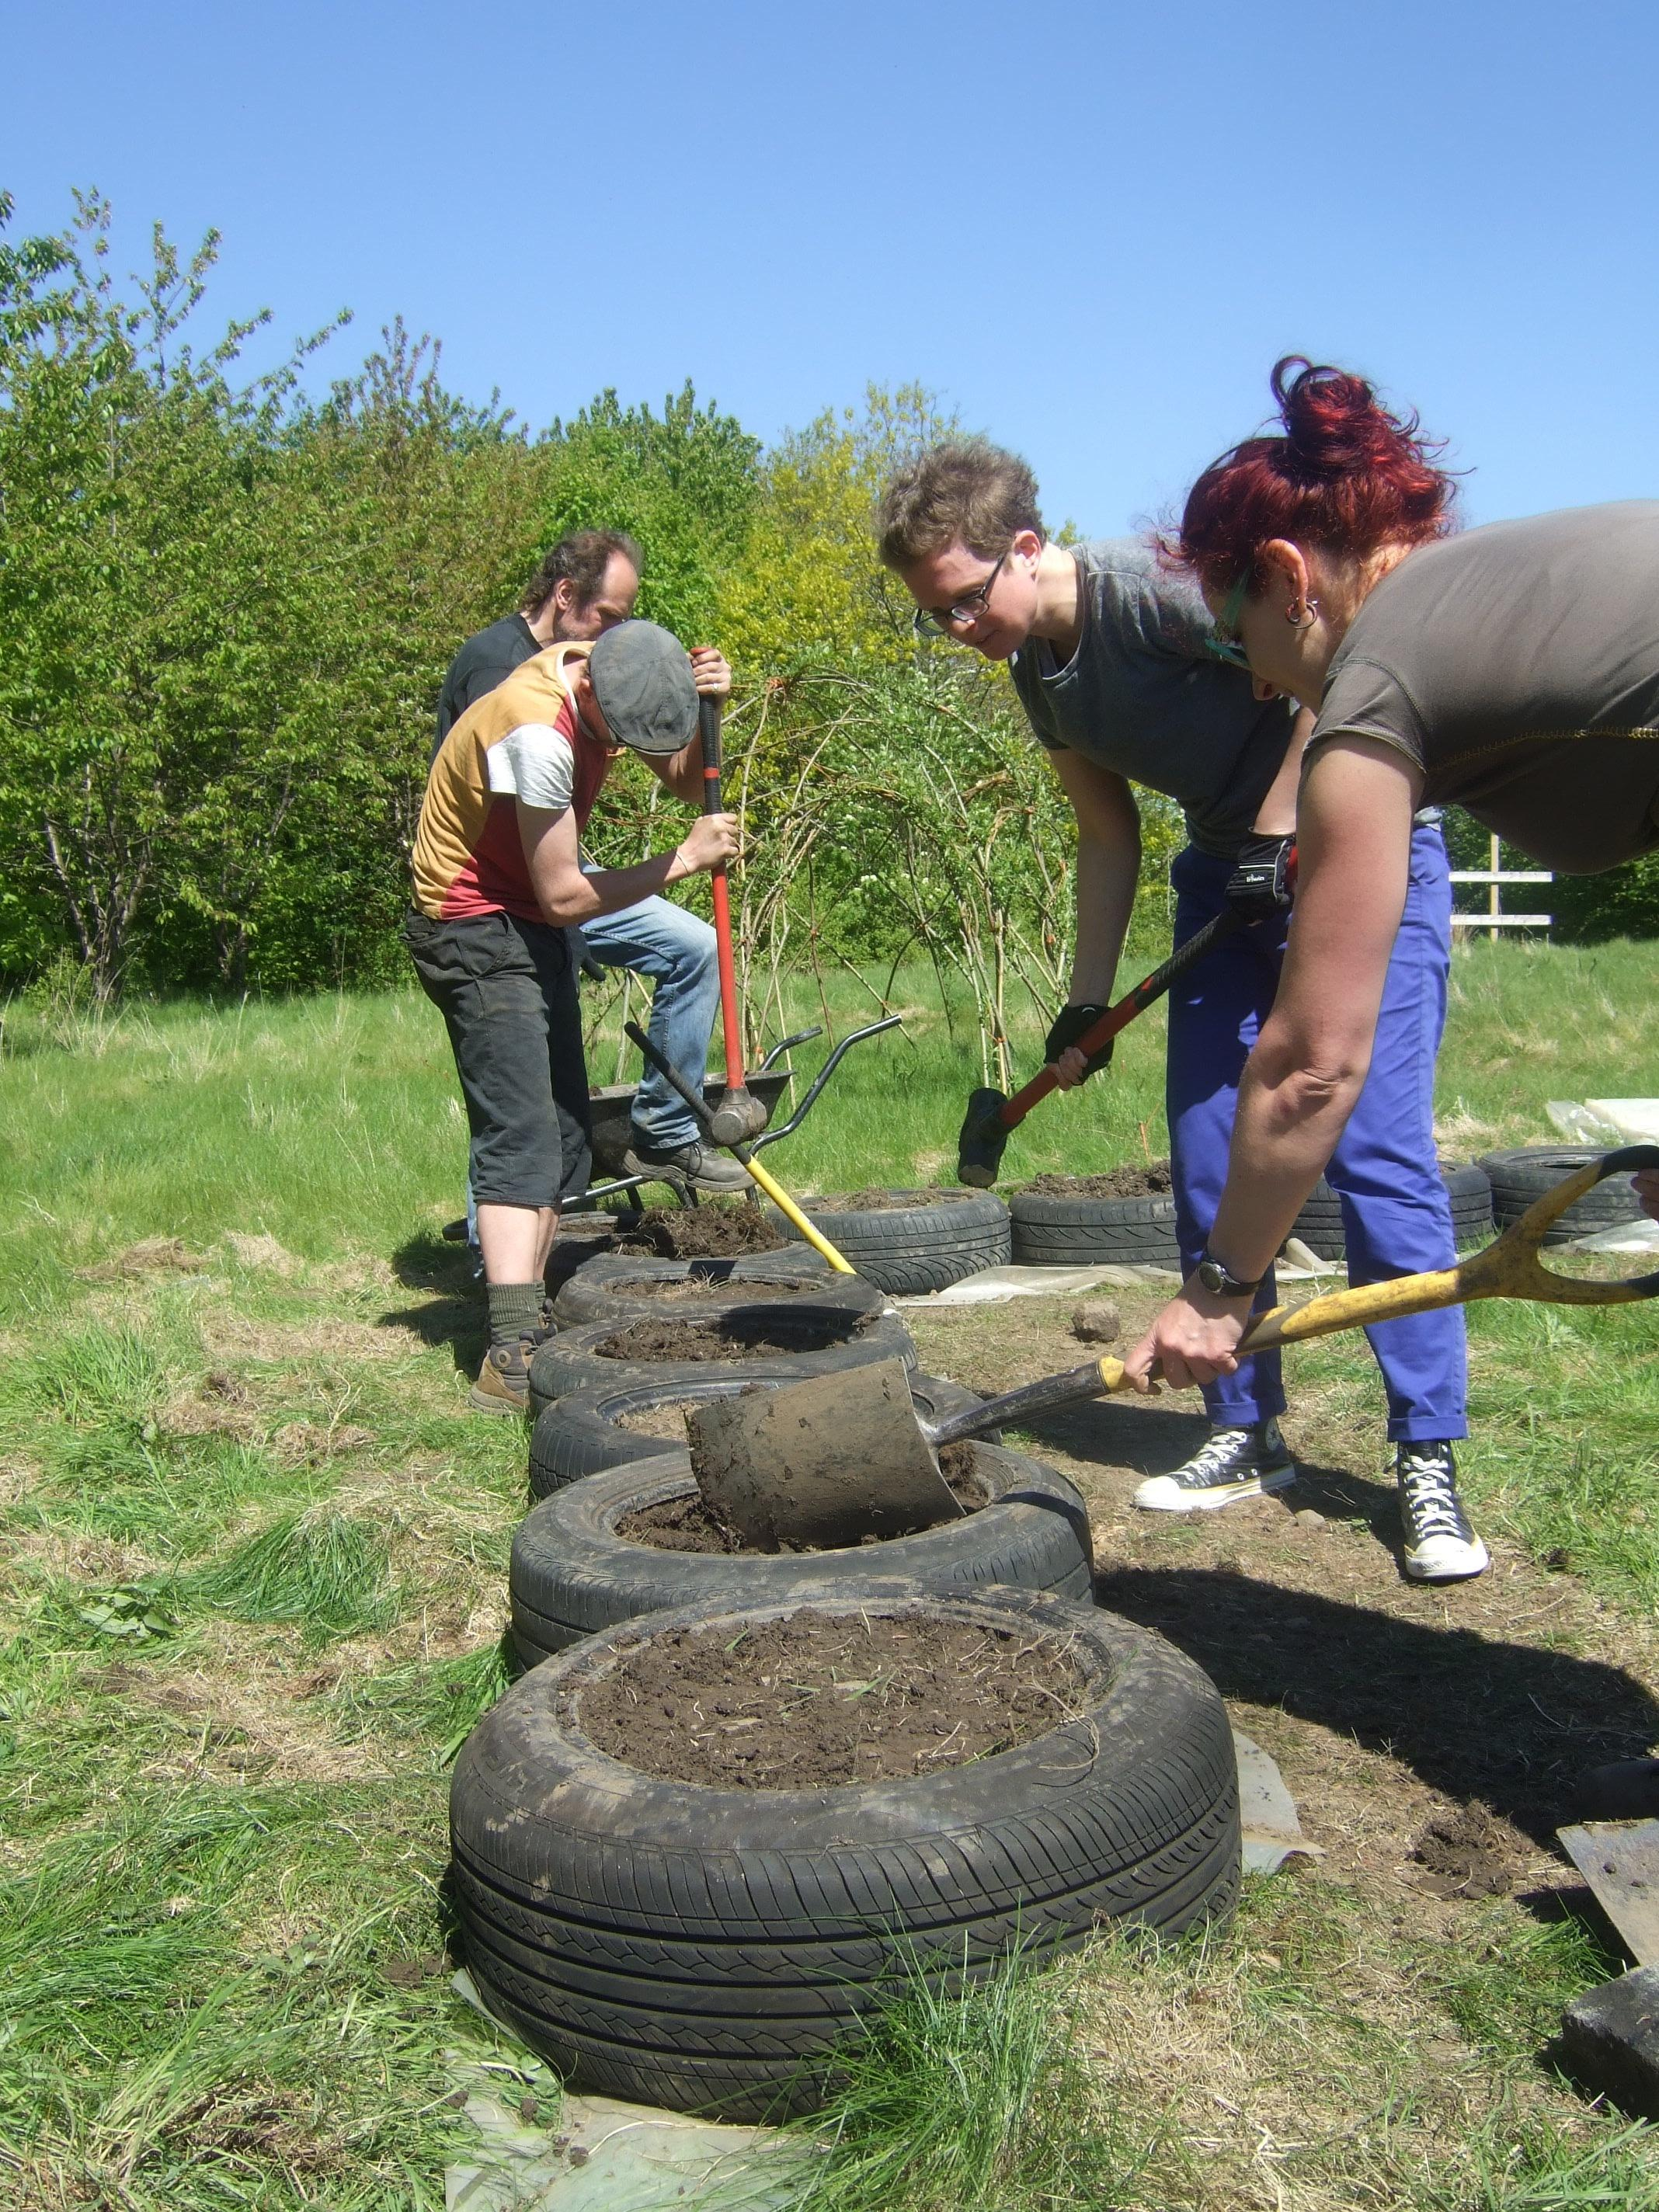 Building a tire wall at Urban Roots Permaculture project